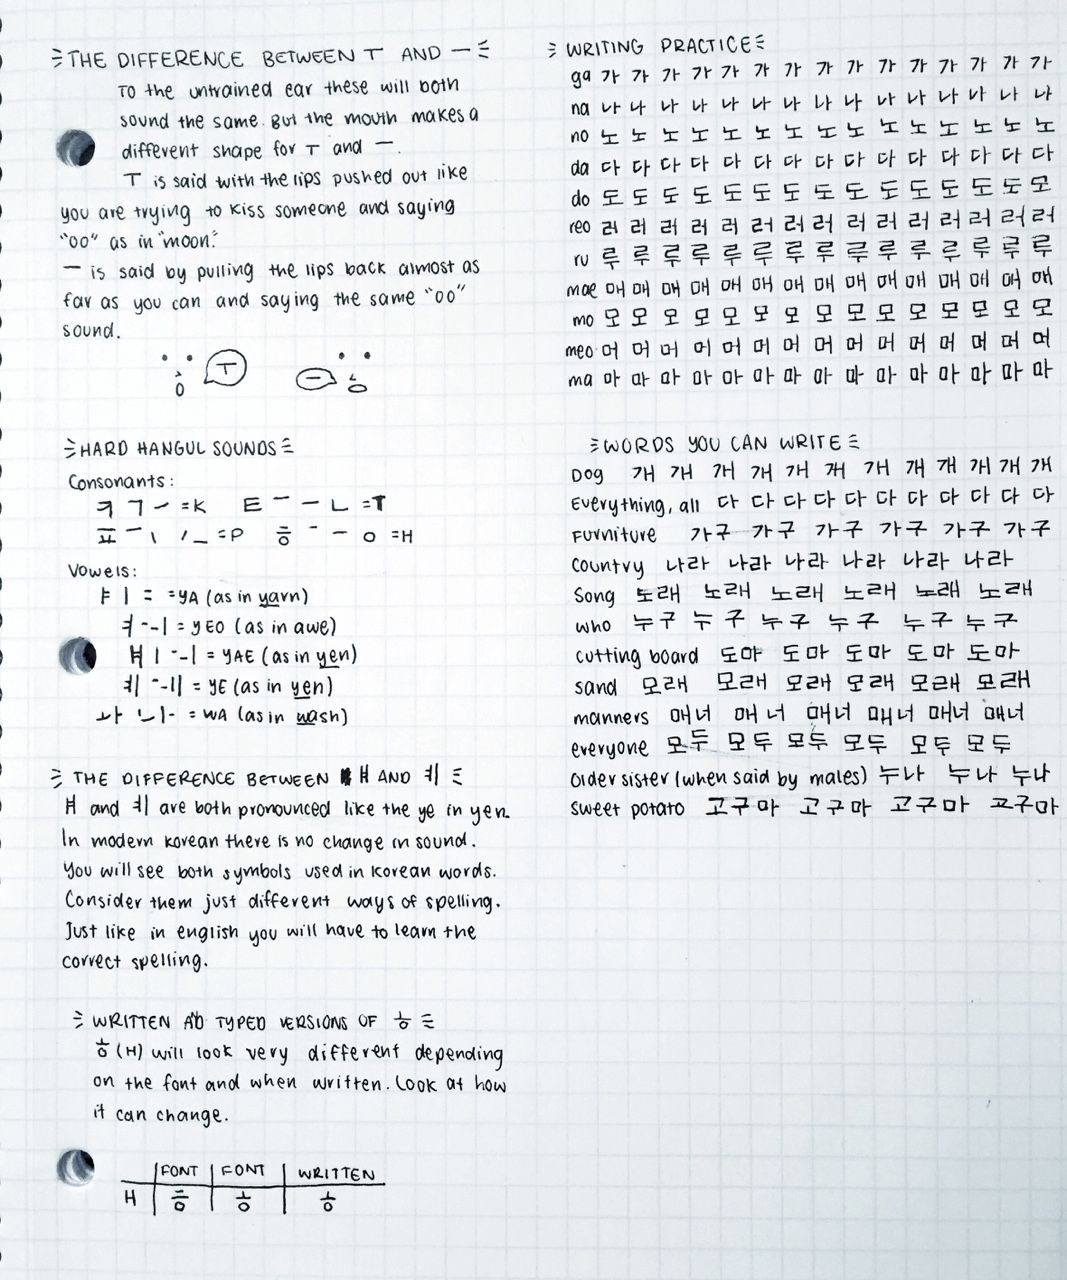 02 05 17 5 Here Are Some Hangul Notes From When I